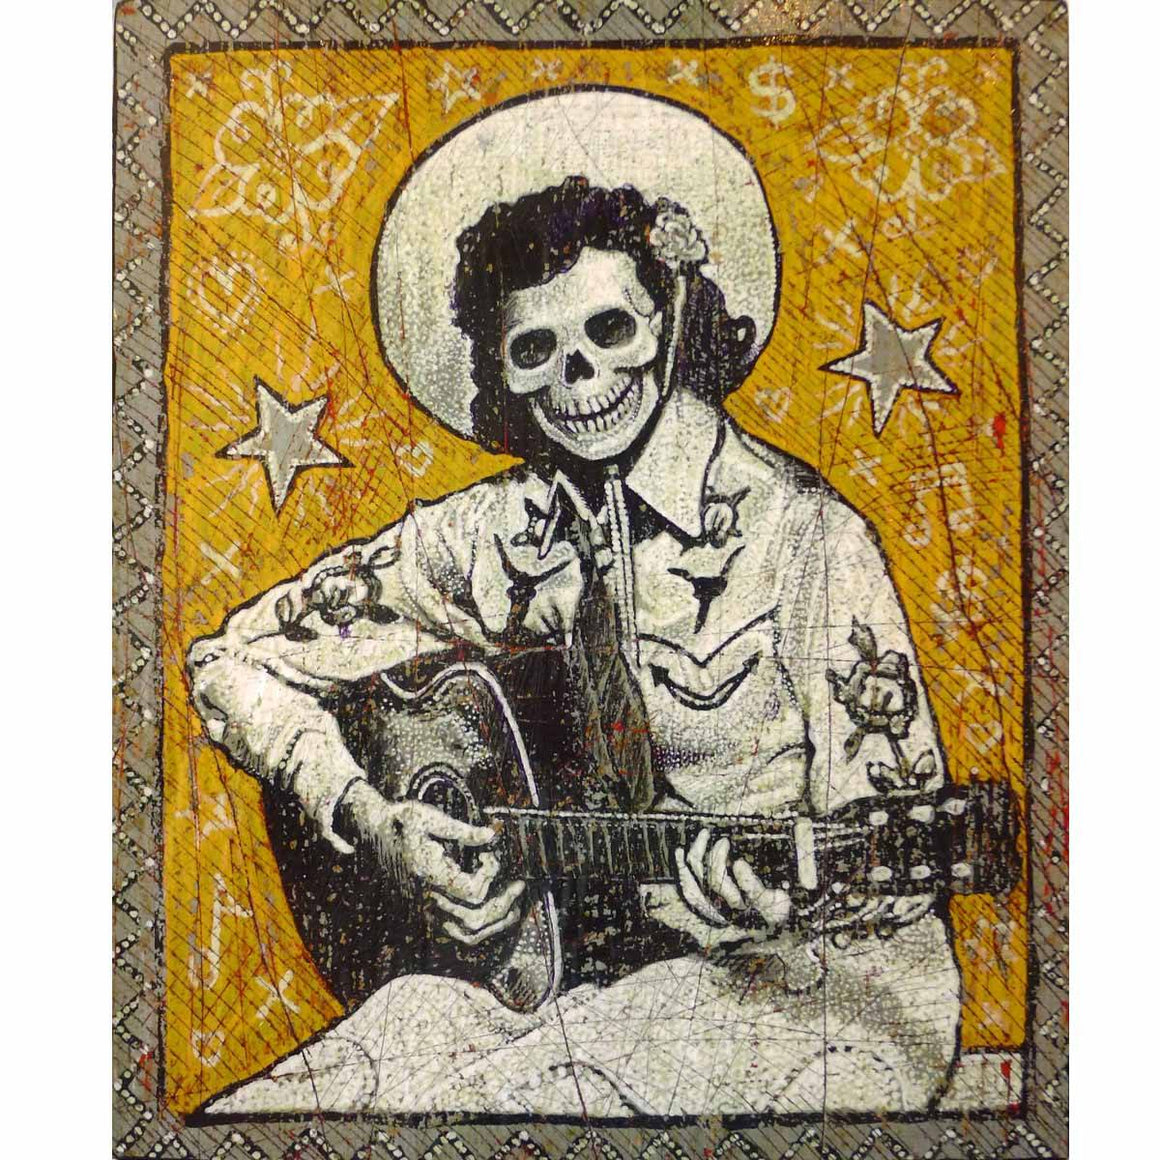 Golden Skullgirl Guitarist - Jon Langford - Yard Dog Art